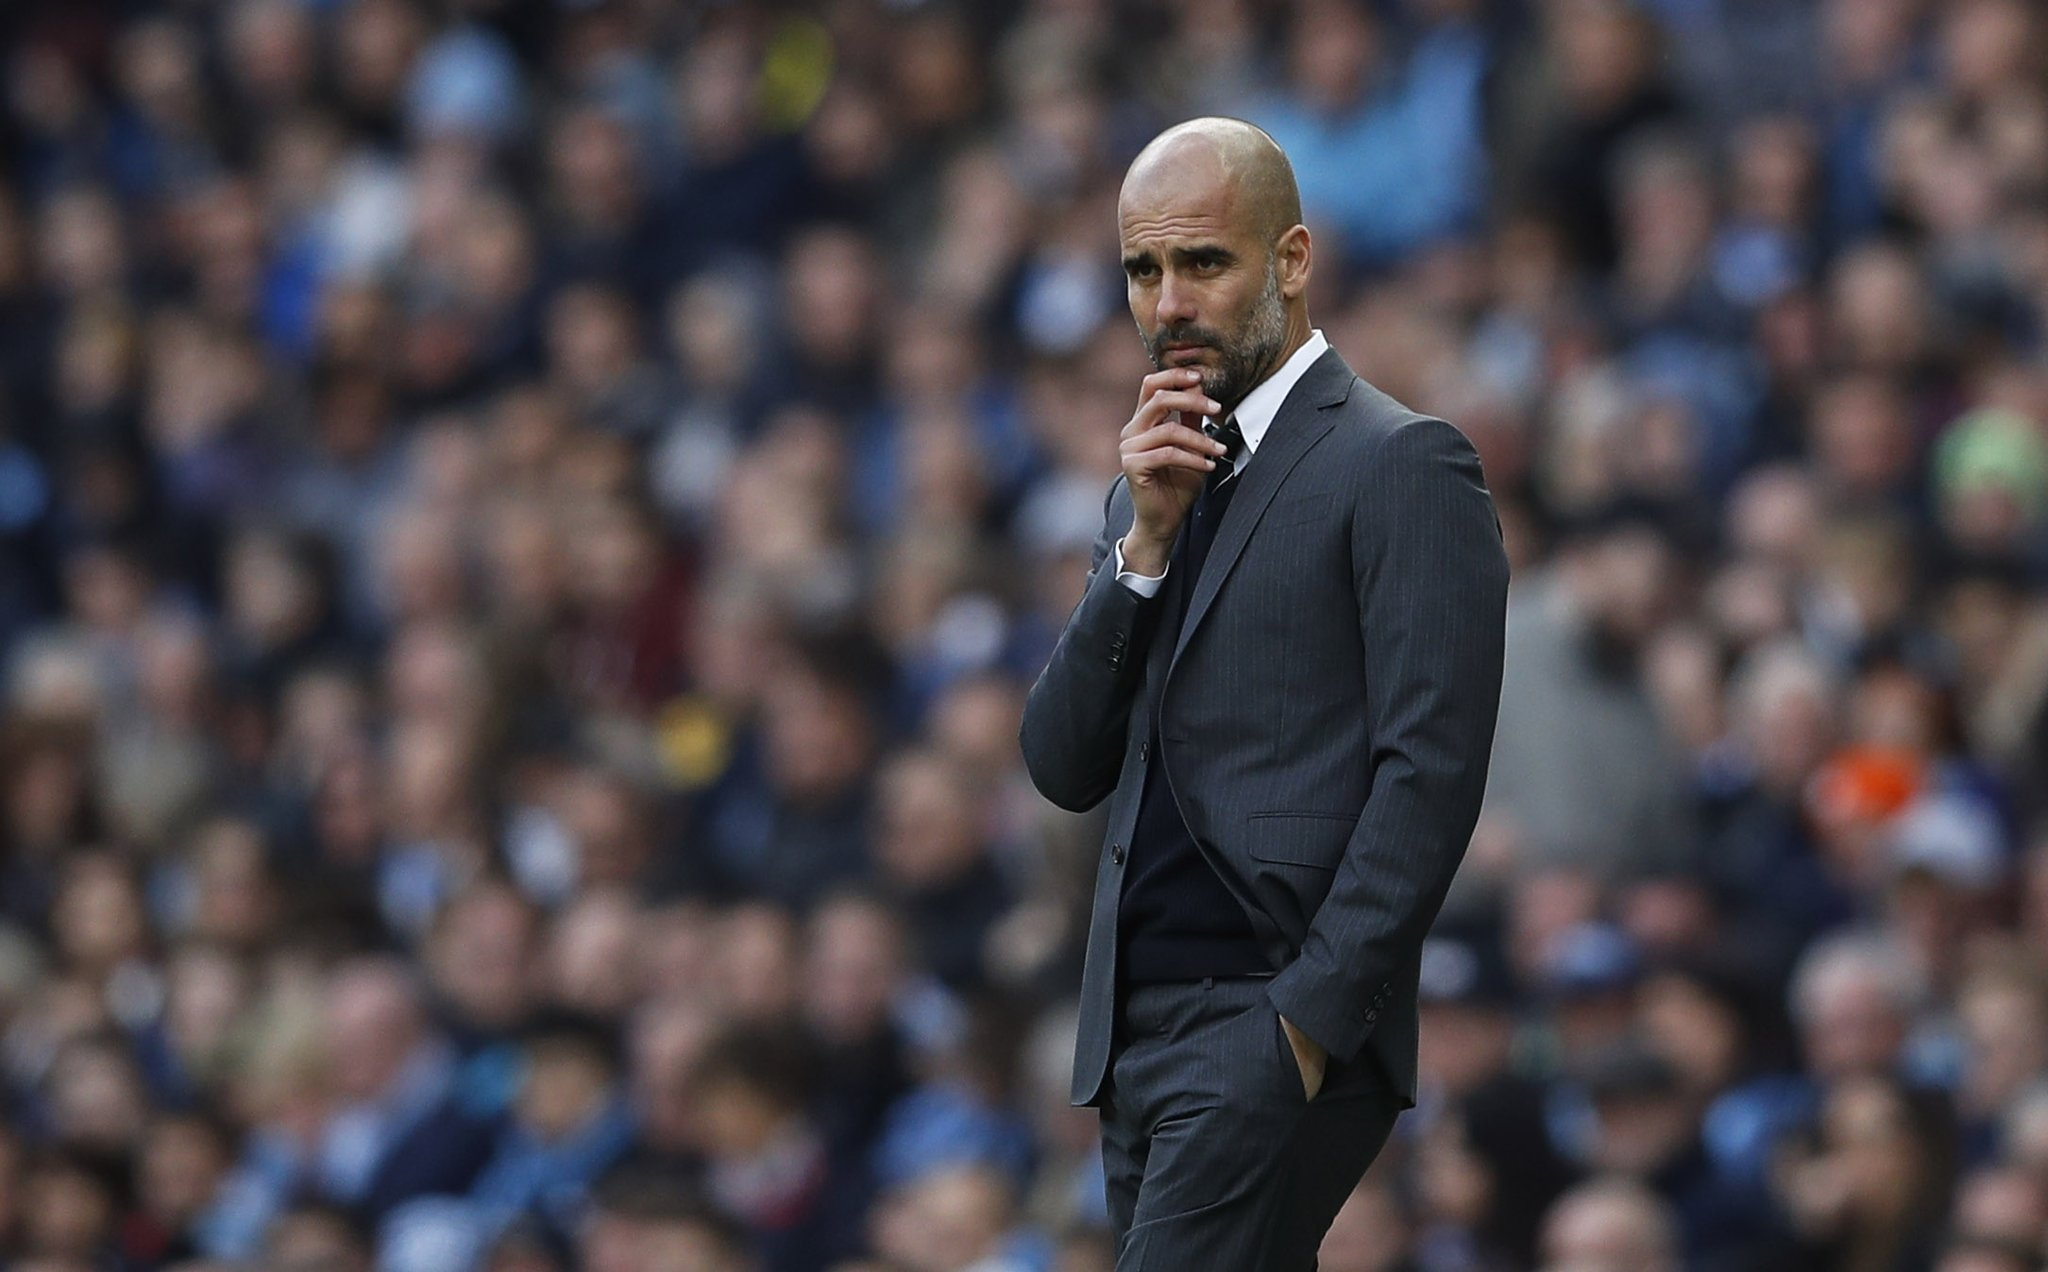 Guardiola Rules Silva Out Of Manchester Derby; Aguero, Jesus Ready To Play